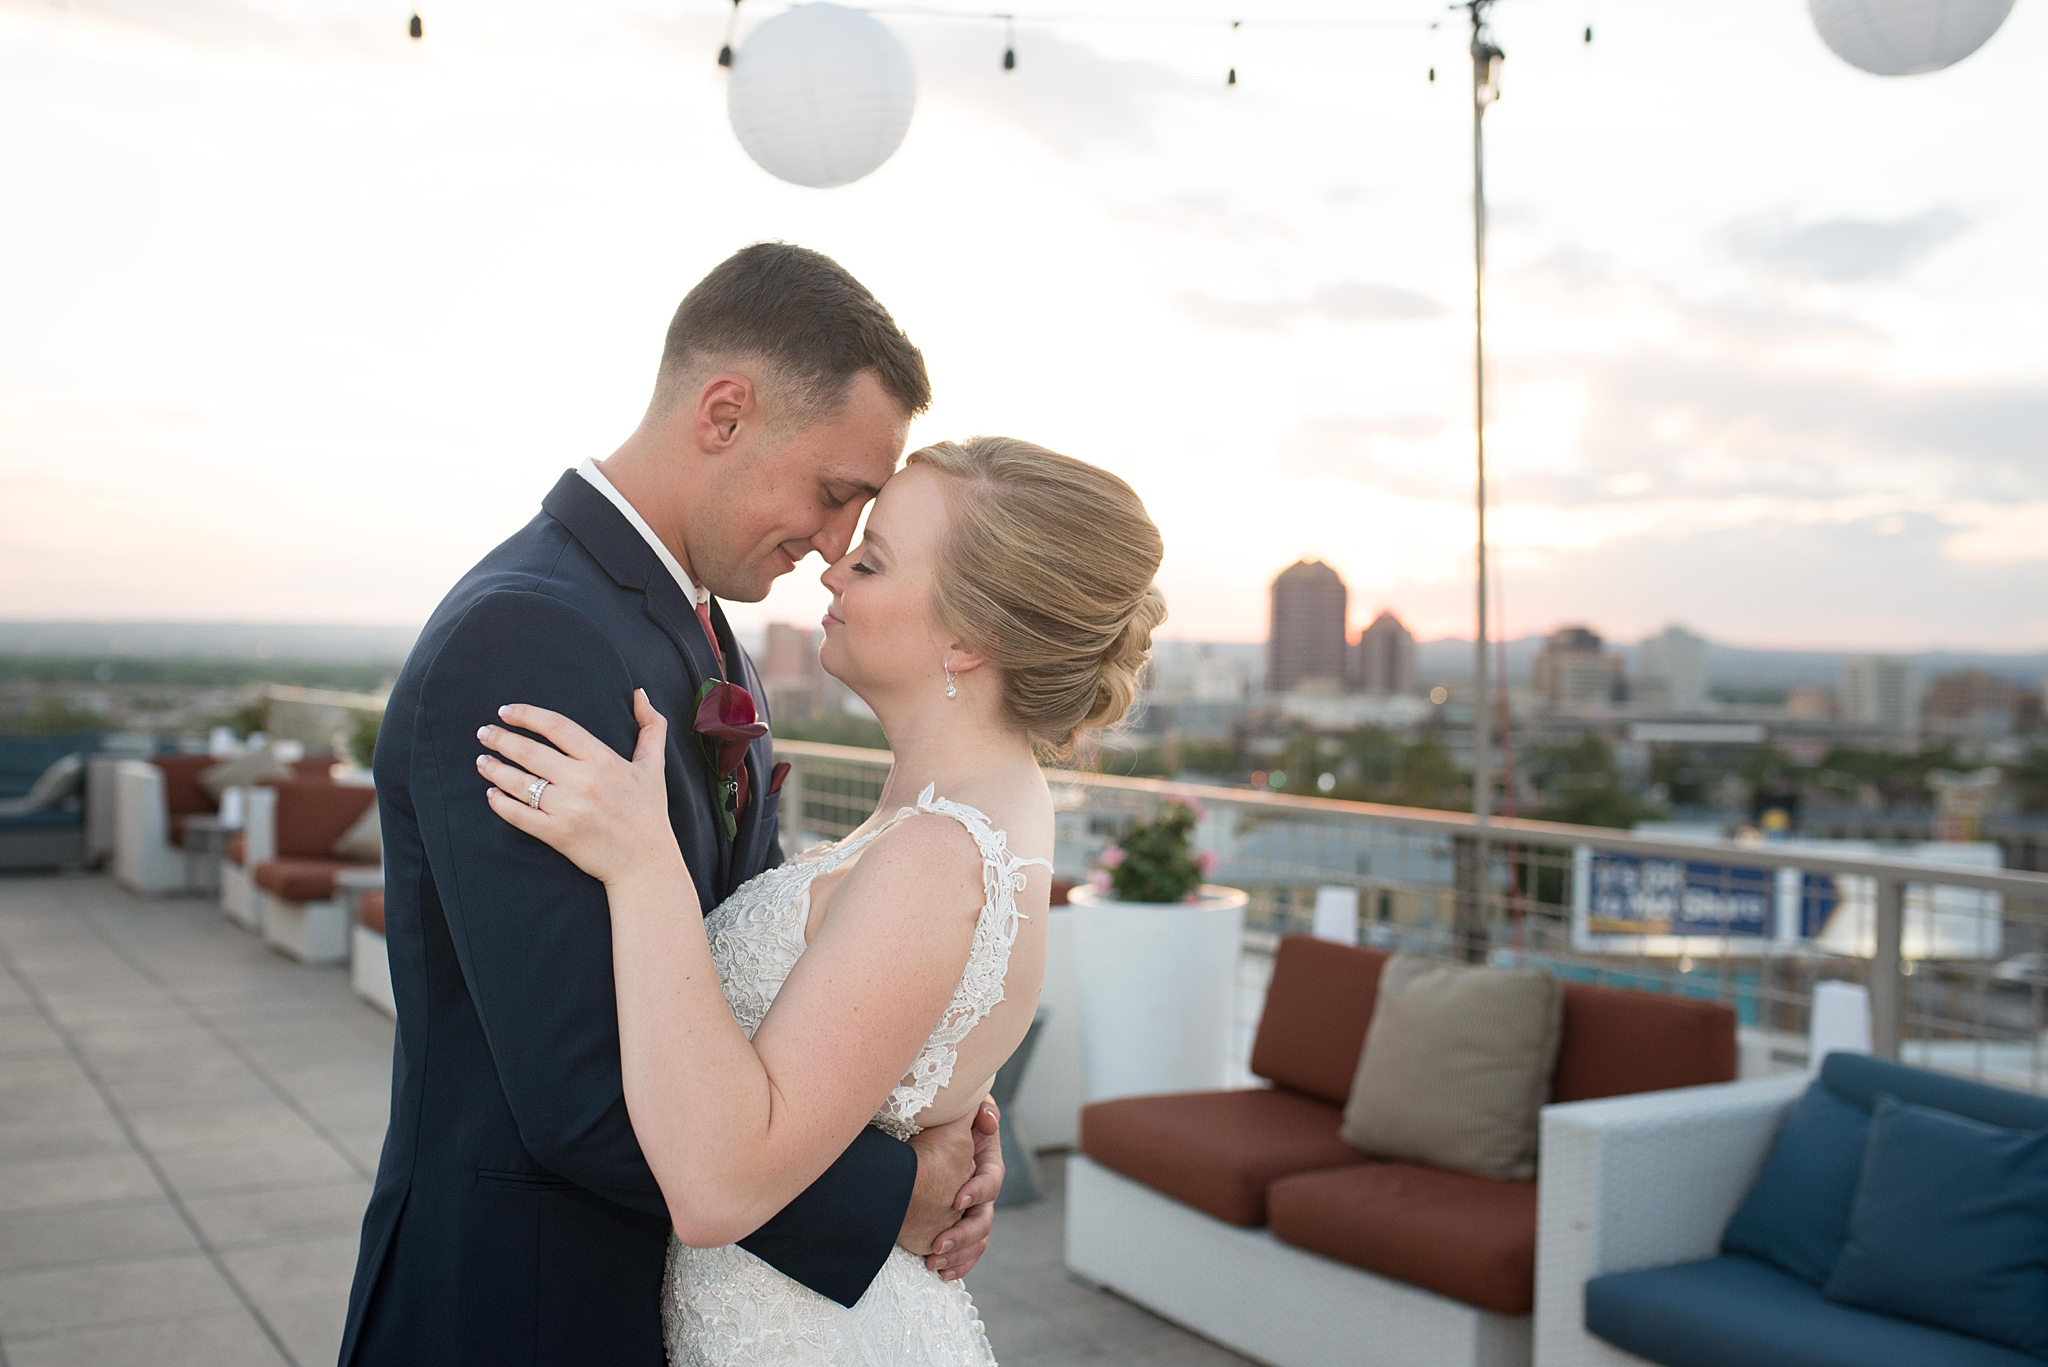 Wedding dress Ann Matthews, jewelry by helzberg diamonds, suits by suits unlimited, hotel parque central wedding photographed by albuquerque wedding photographer kayla kitts rooftop wedding